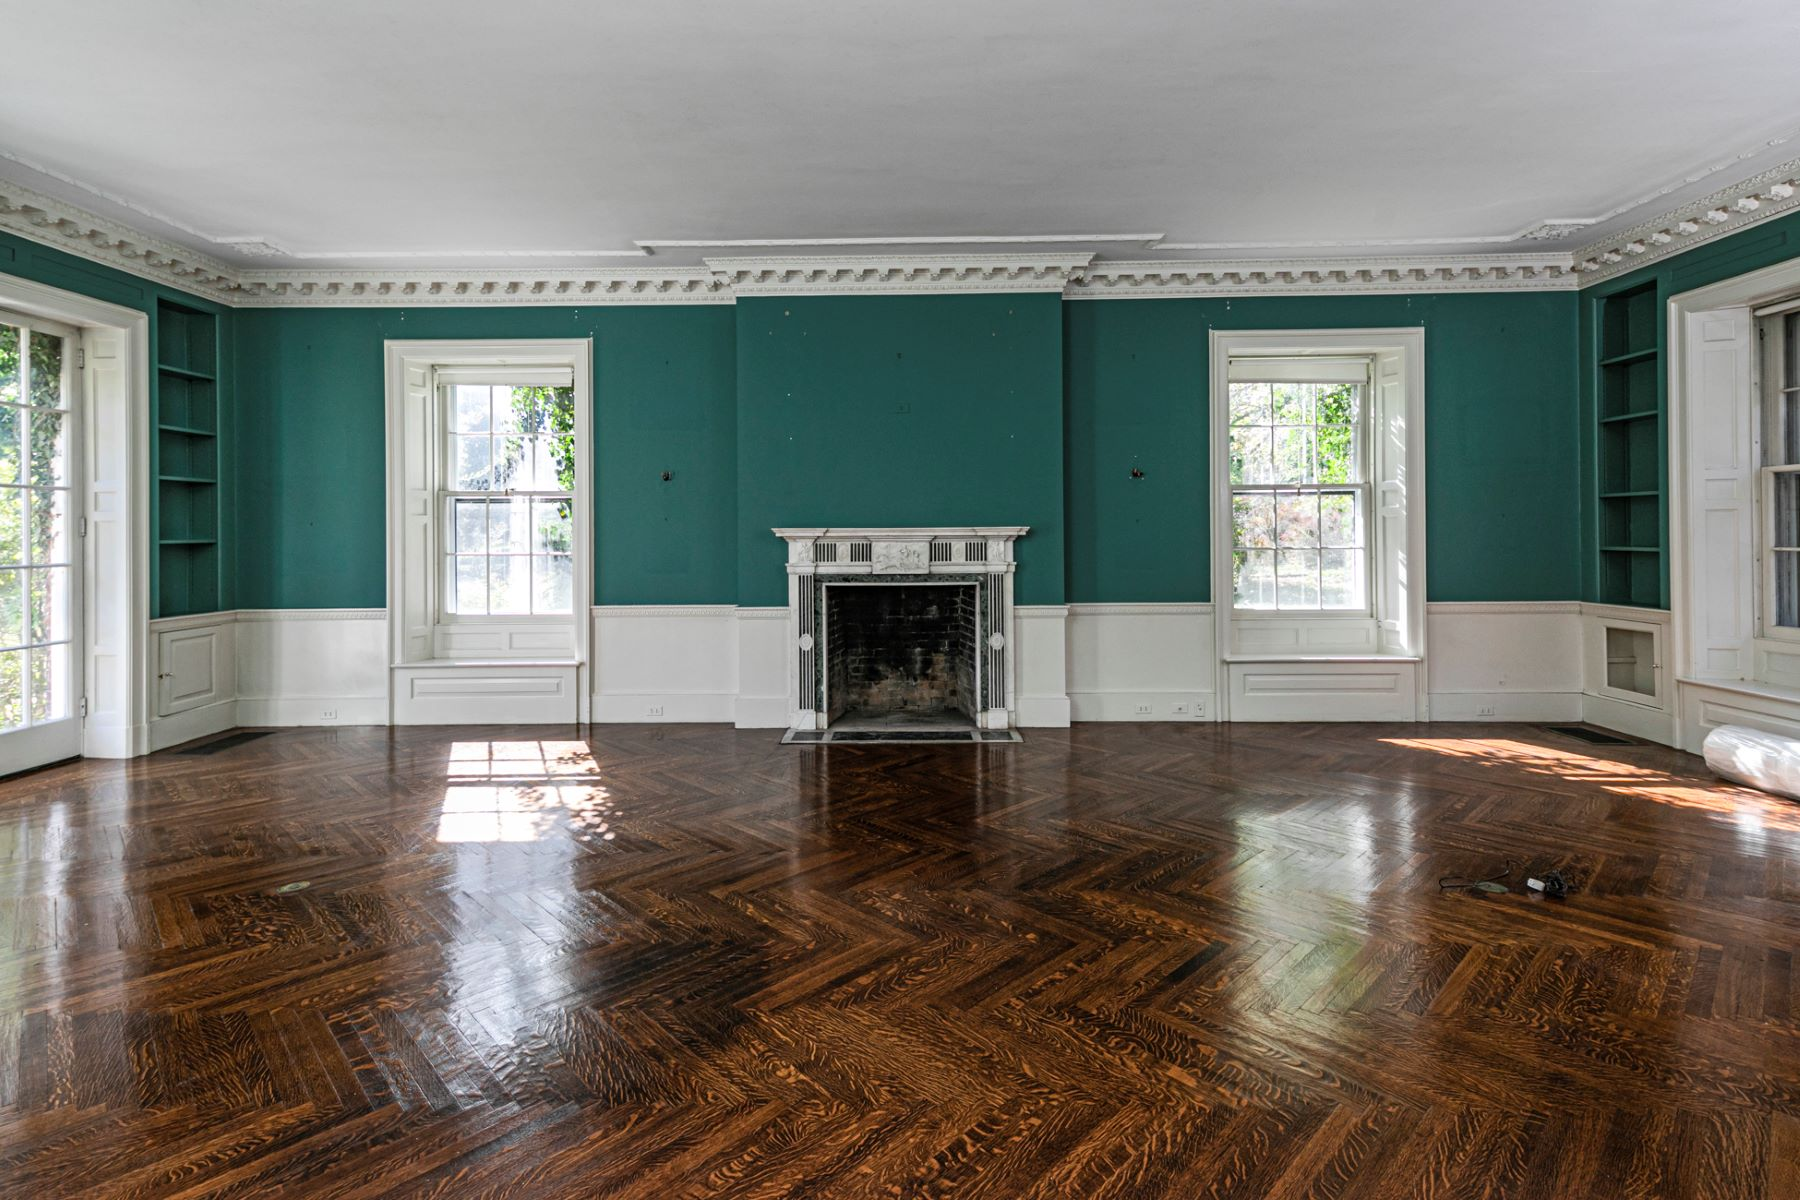 Additional photo for property listing at Woodslea House 91-93 Edgerstoune Road, Princeton, New Jersey 08540 United States